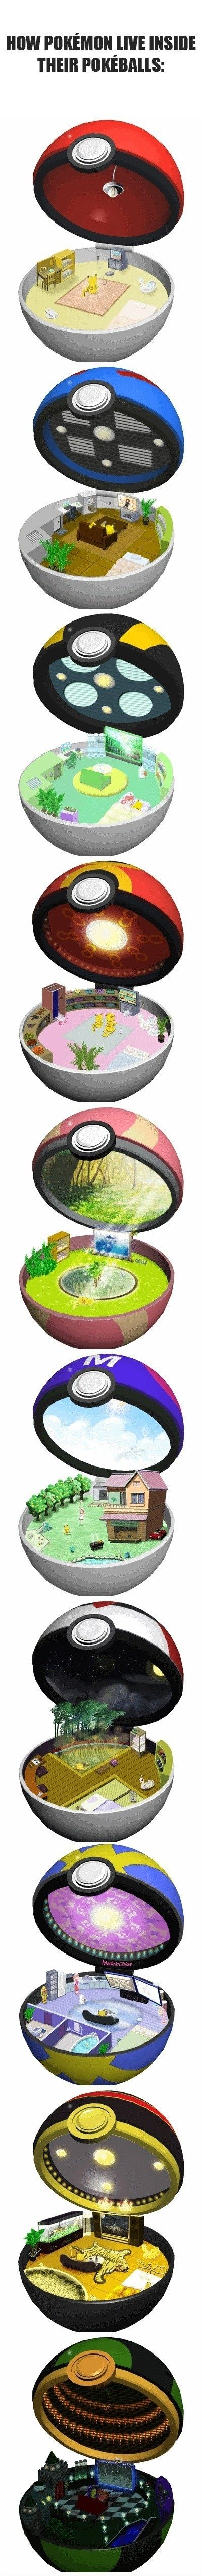 Dunno what pikachu is doing with a car in his Master Ball.. But he deserves nice things!